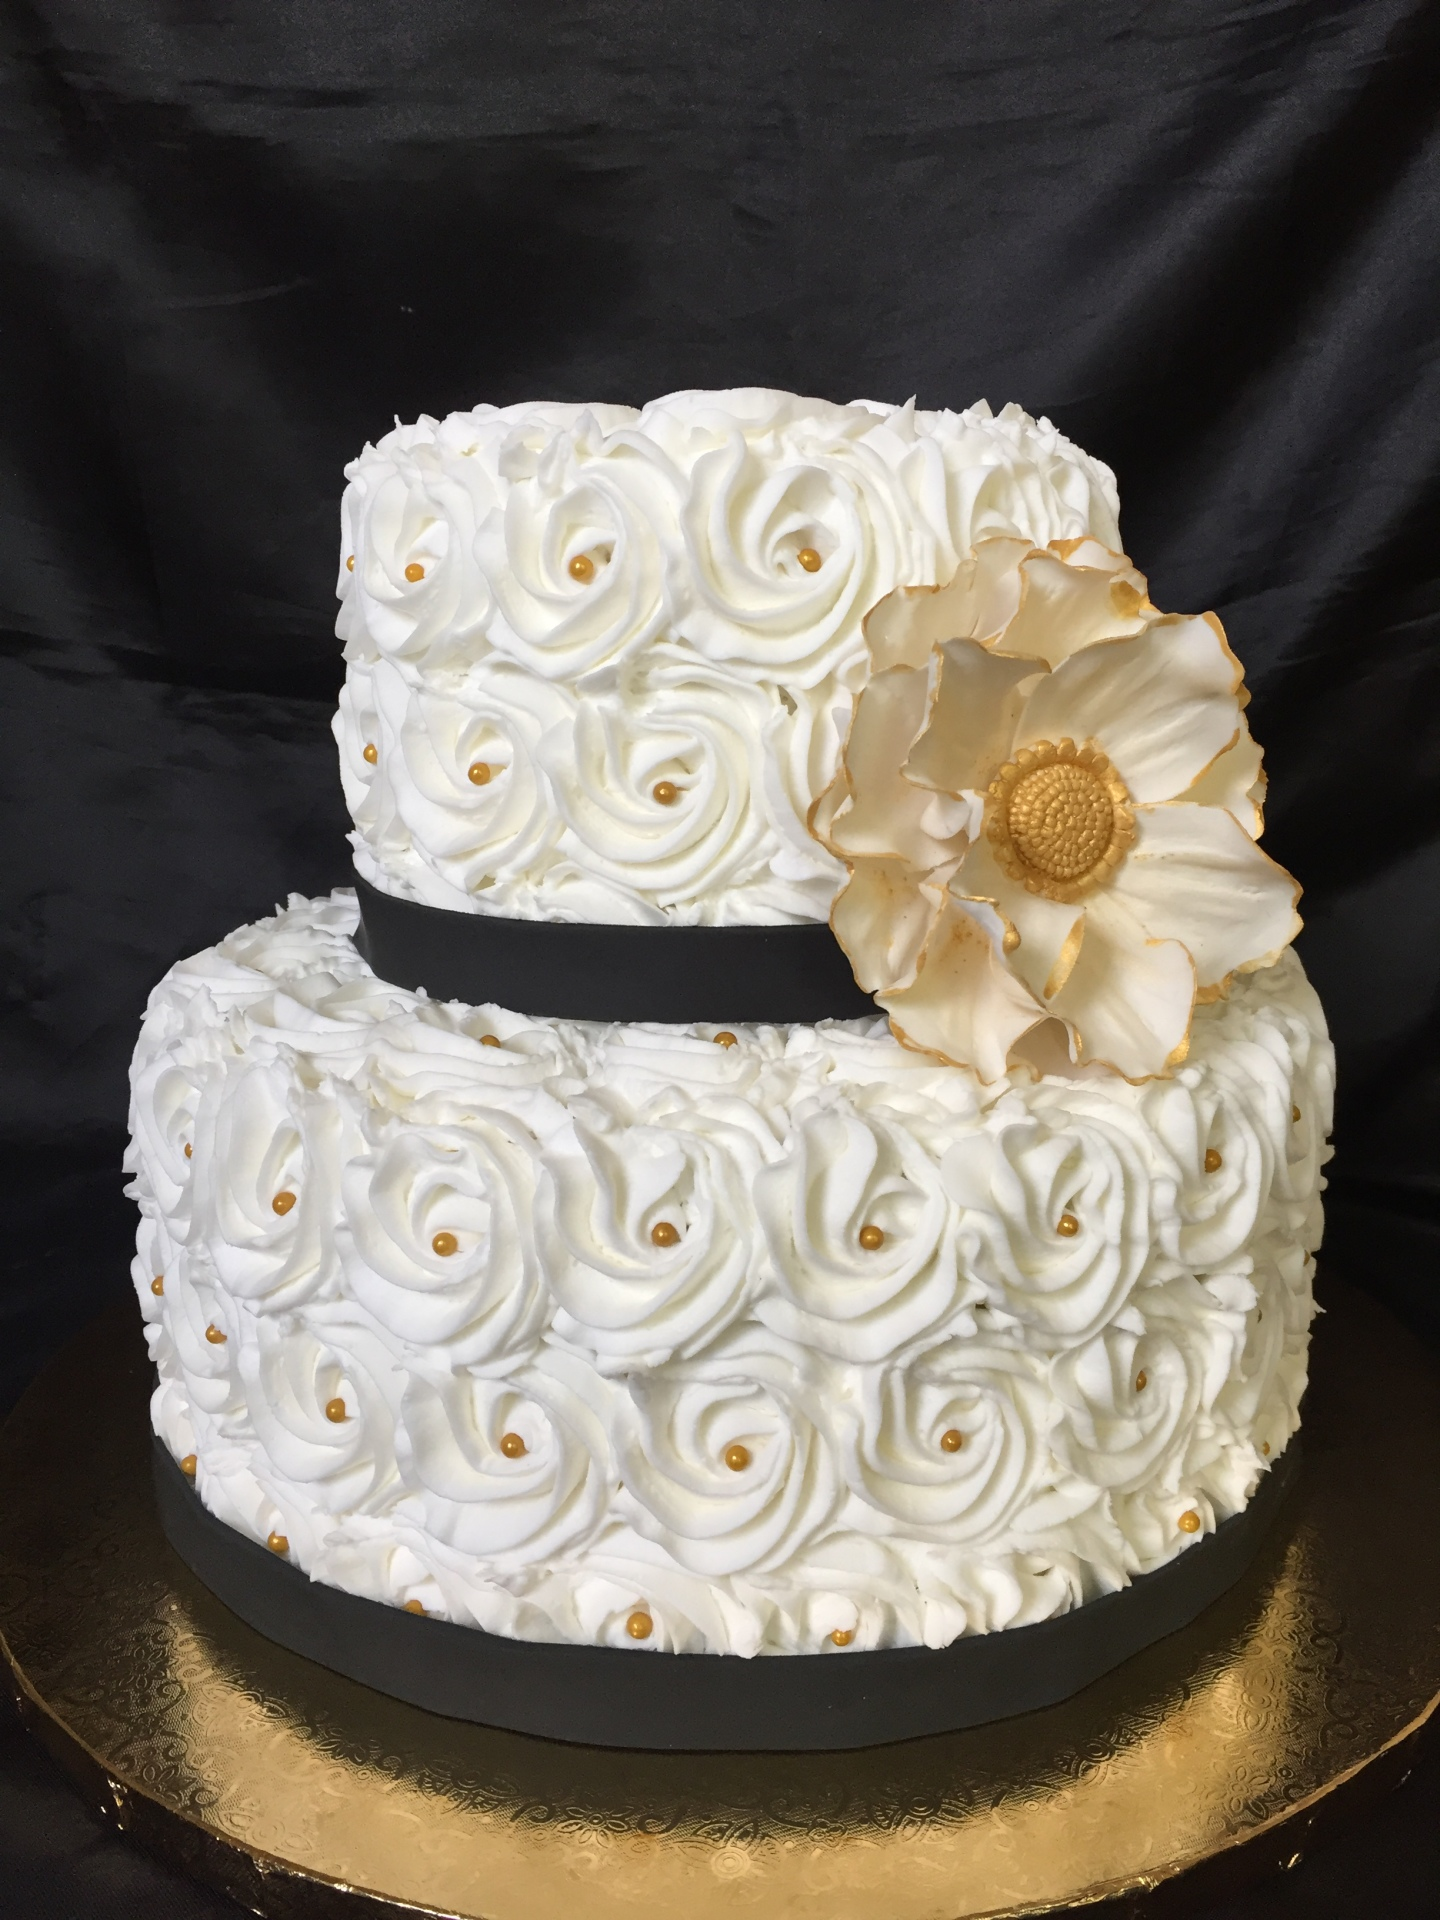 White rosettes with gold flower